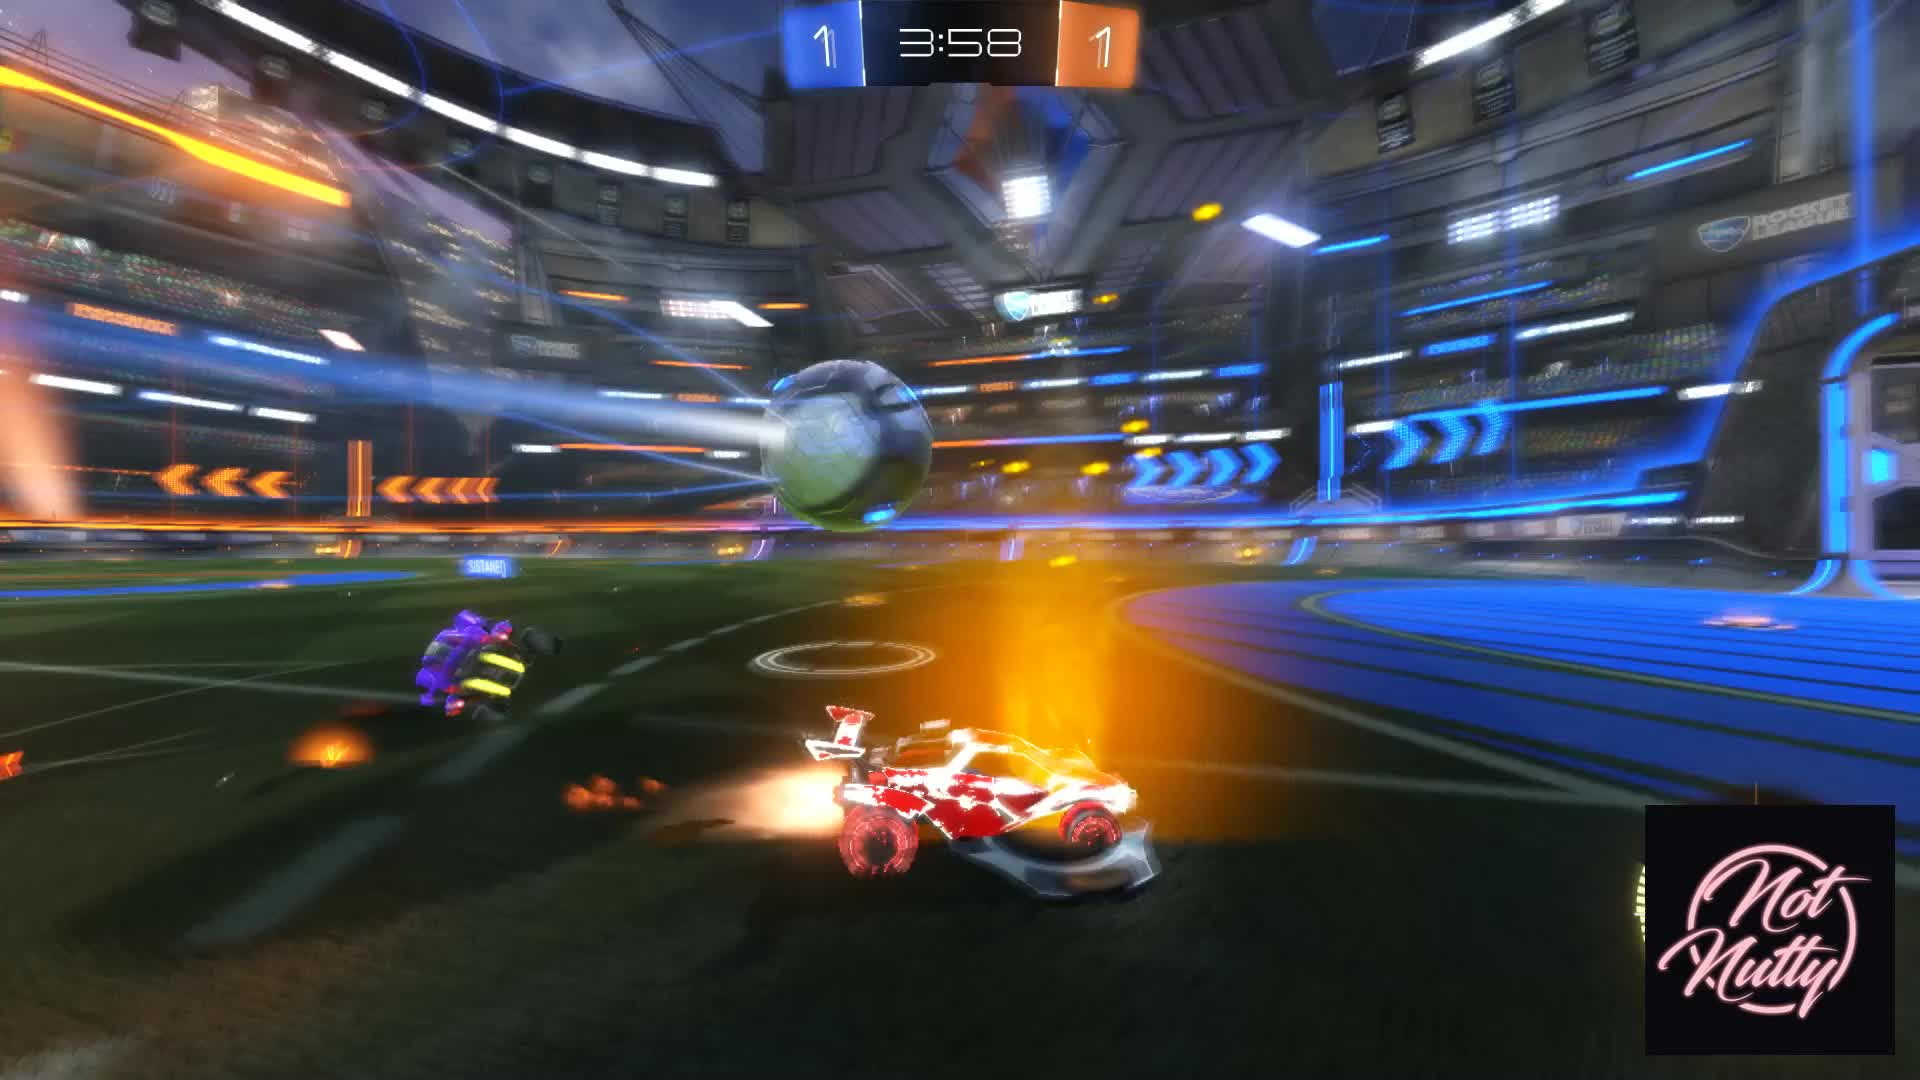 Gif Your Game, GifYourGame, Goal, NotNutty™, Rocket League, RocketLeague, Goal 3: NotNutty™ GIFs